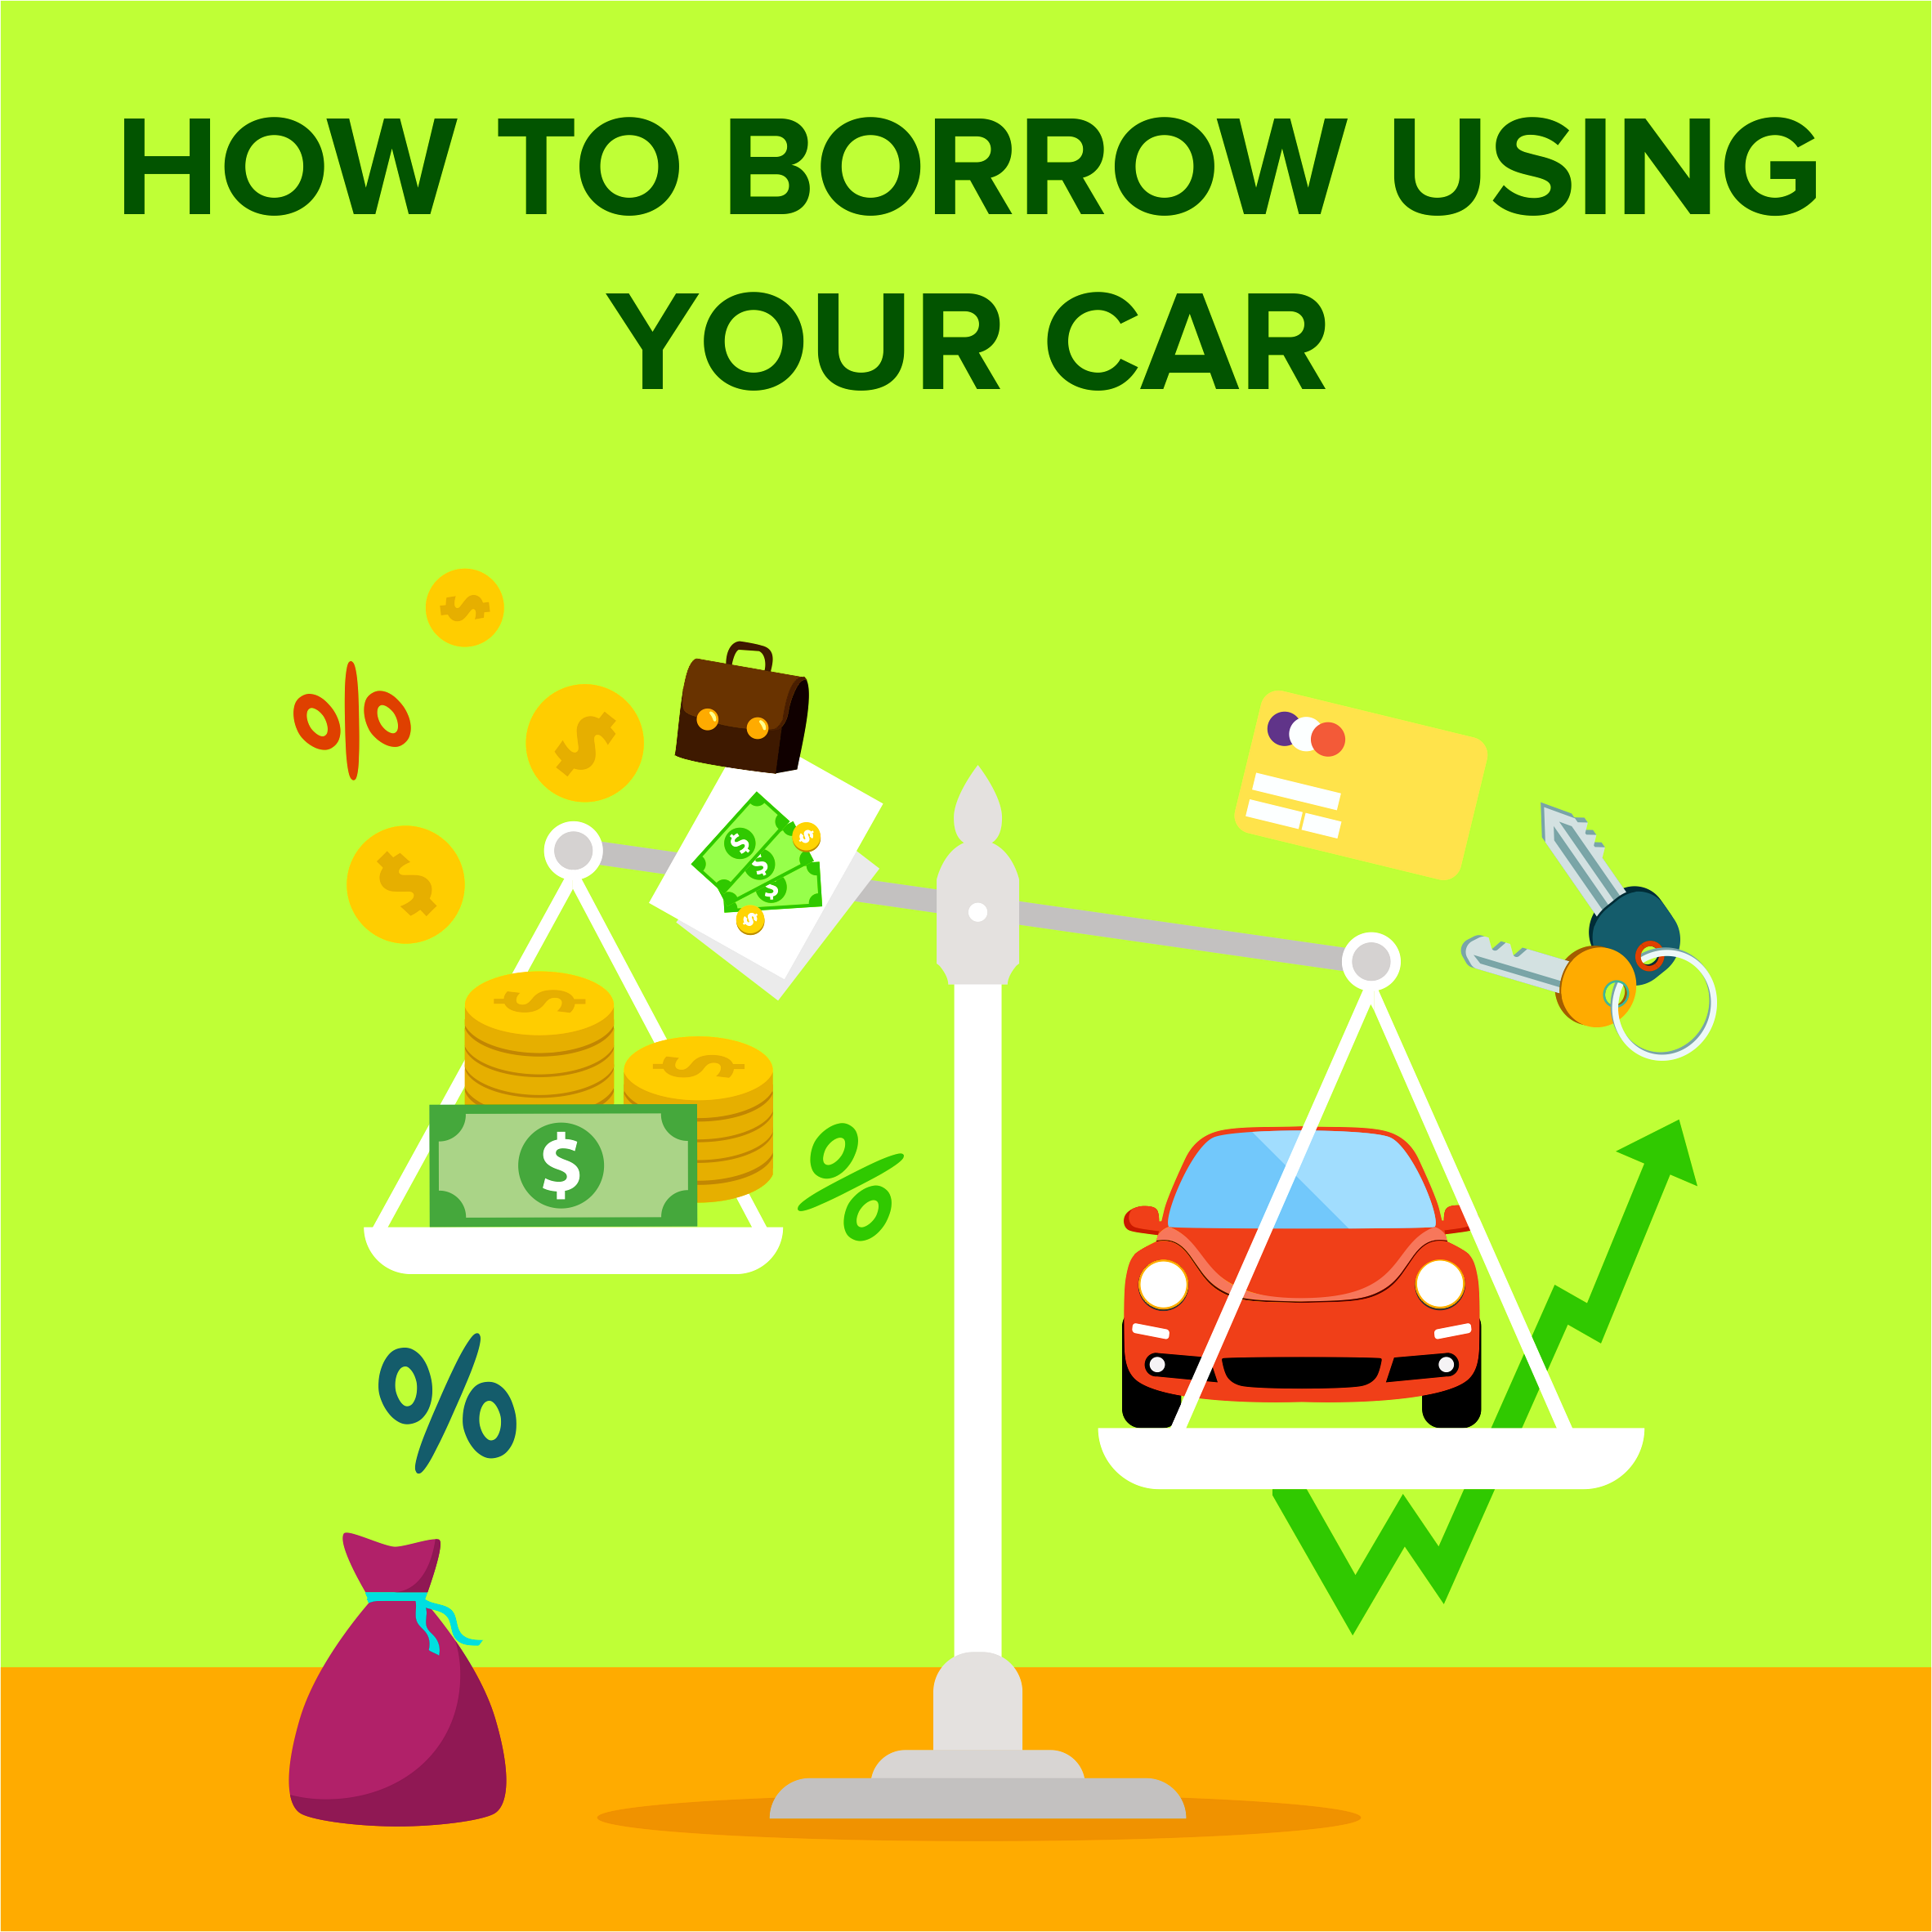 How to Borrow Using Your Car